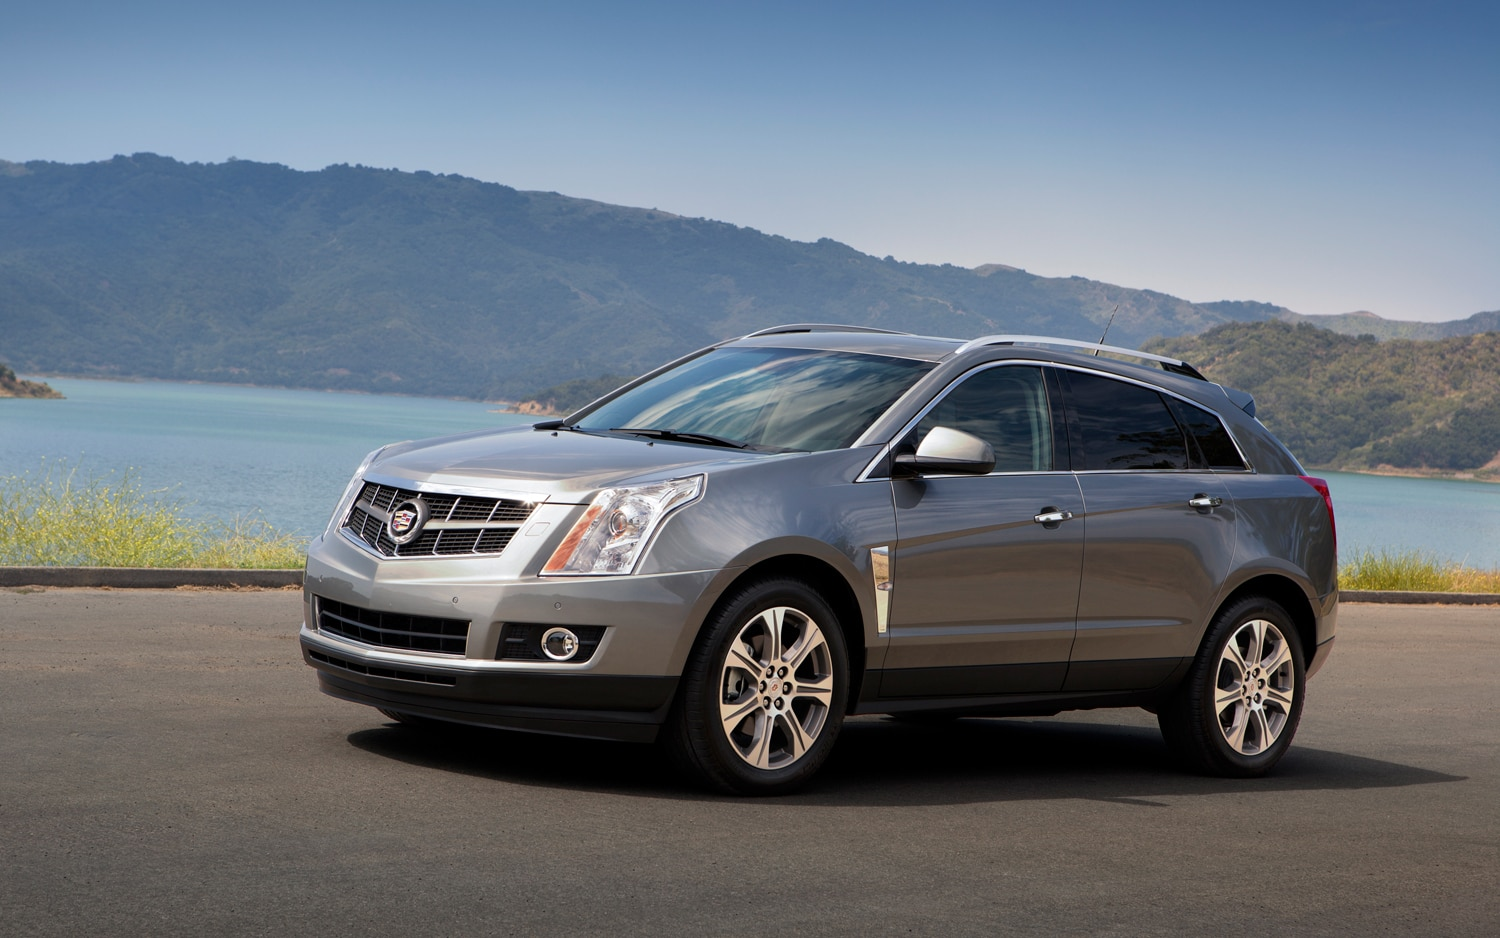 2012 Cadillac SRX Front Left Side View 2